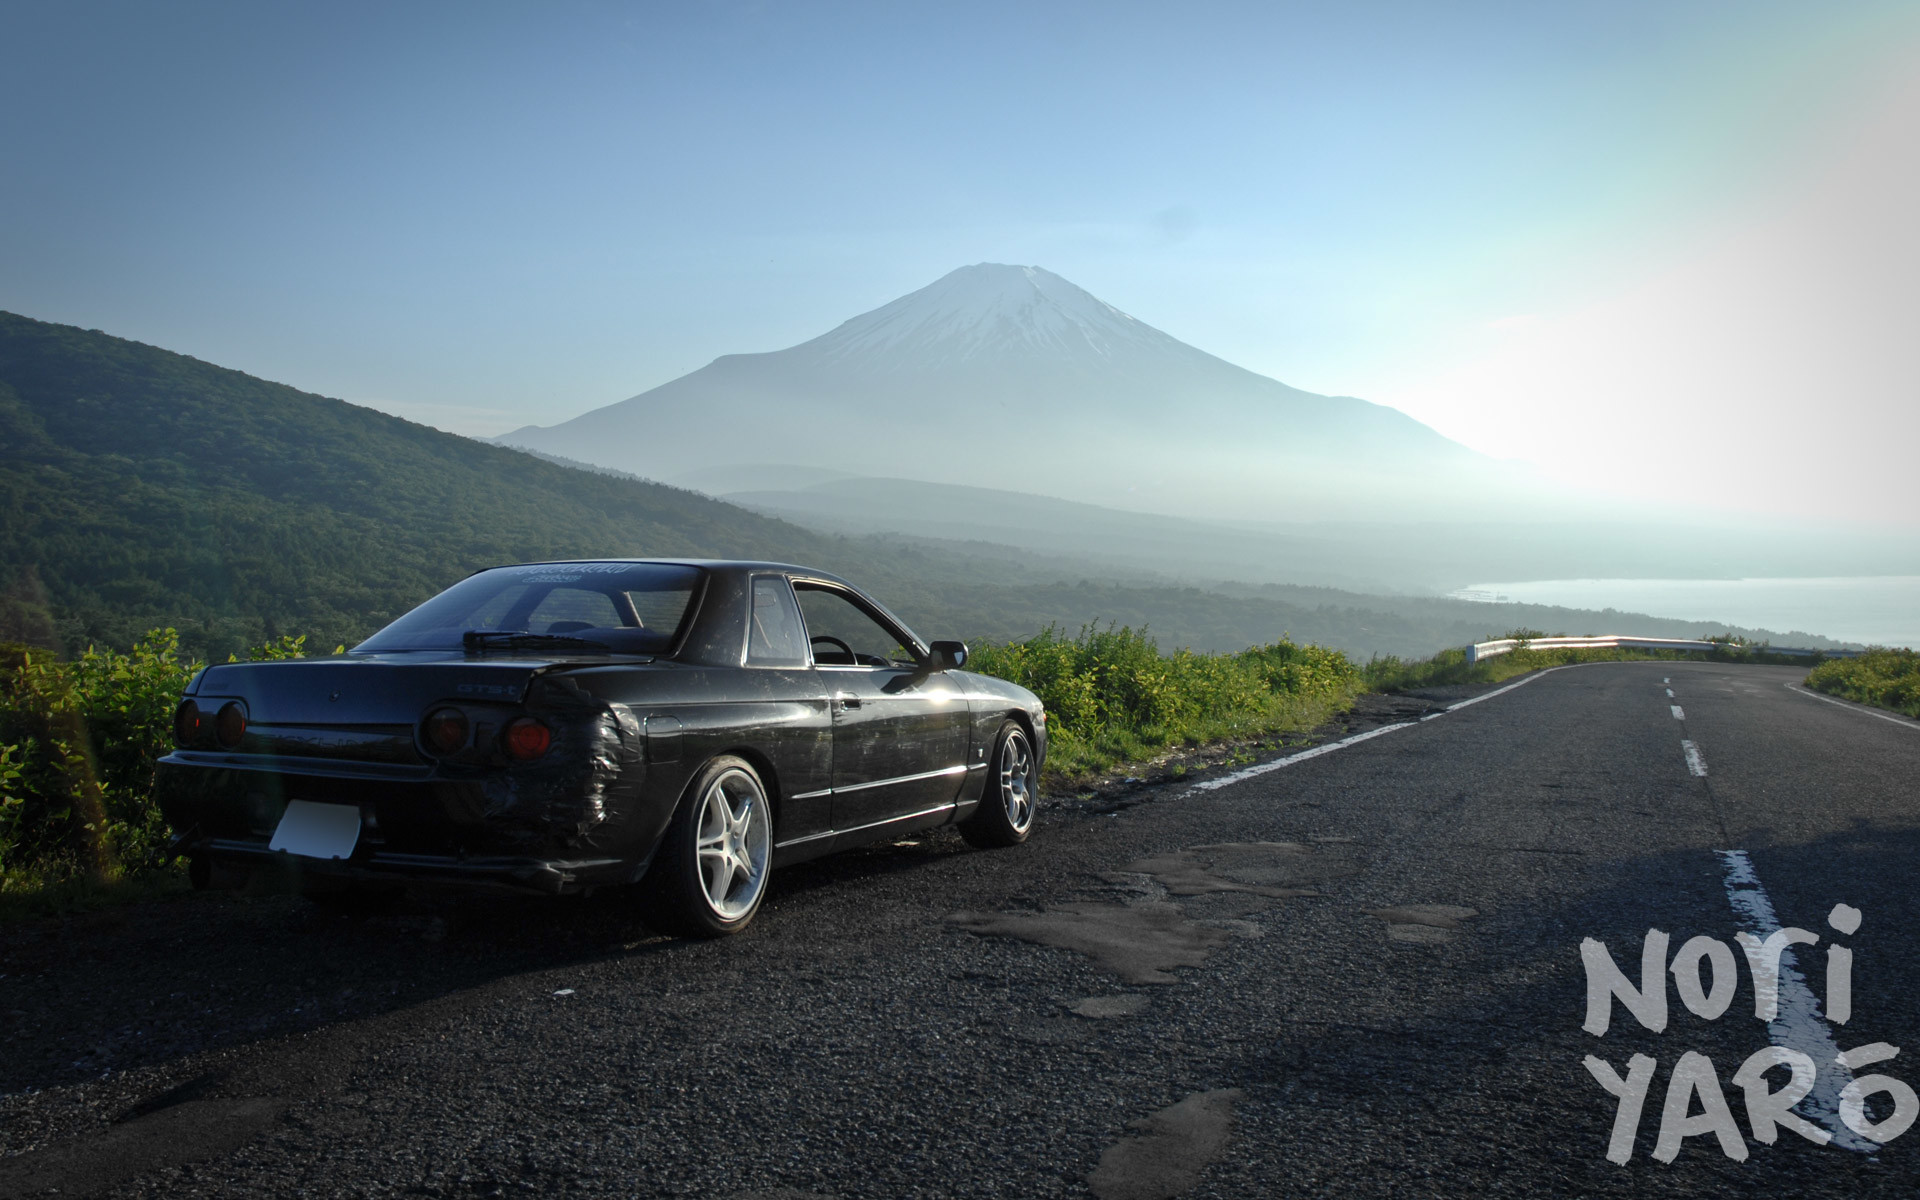 WALLPAPER WEDNESDAY: Skyline at Fuji, and 396 Motoring Cresta